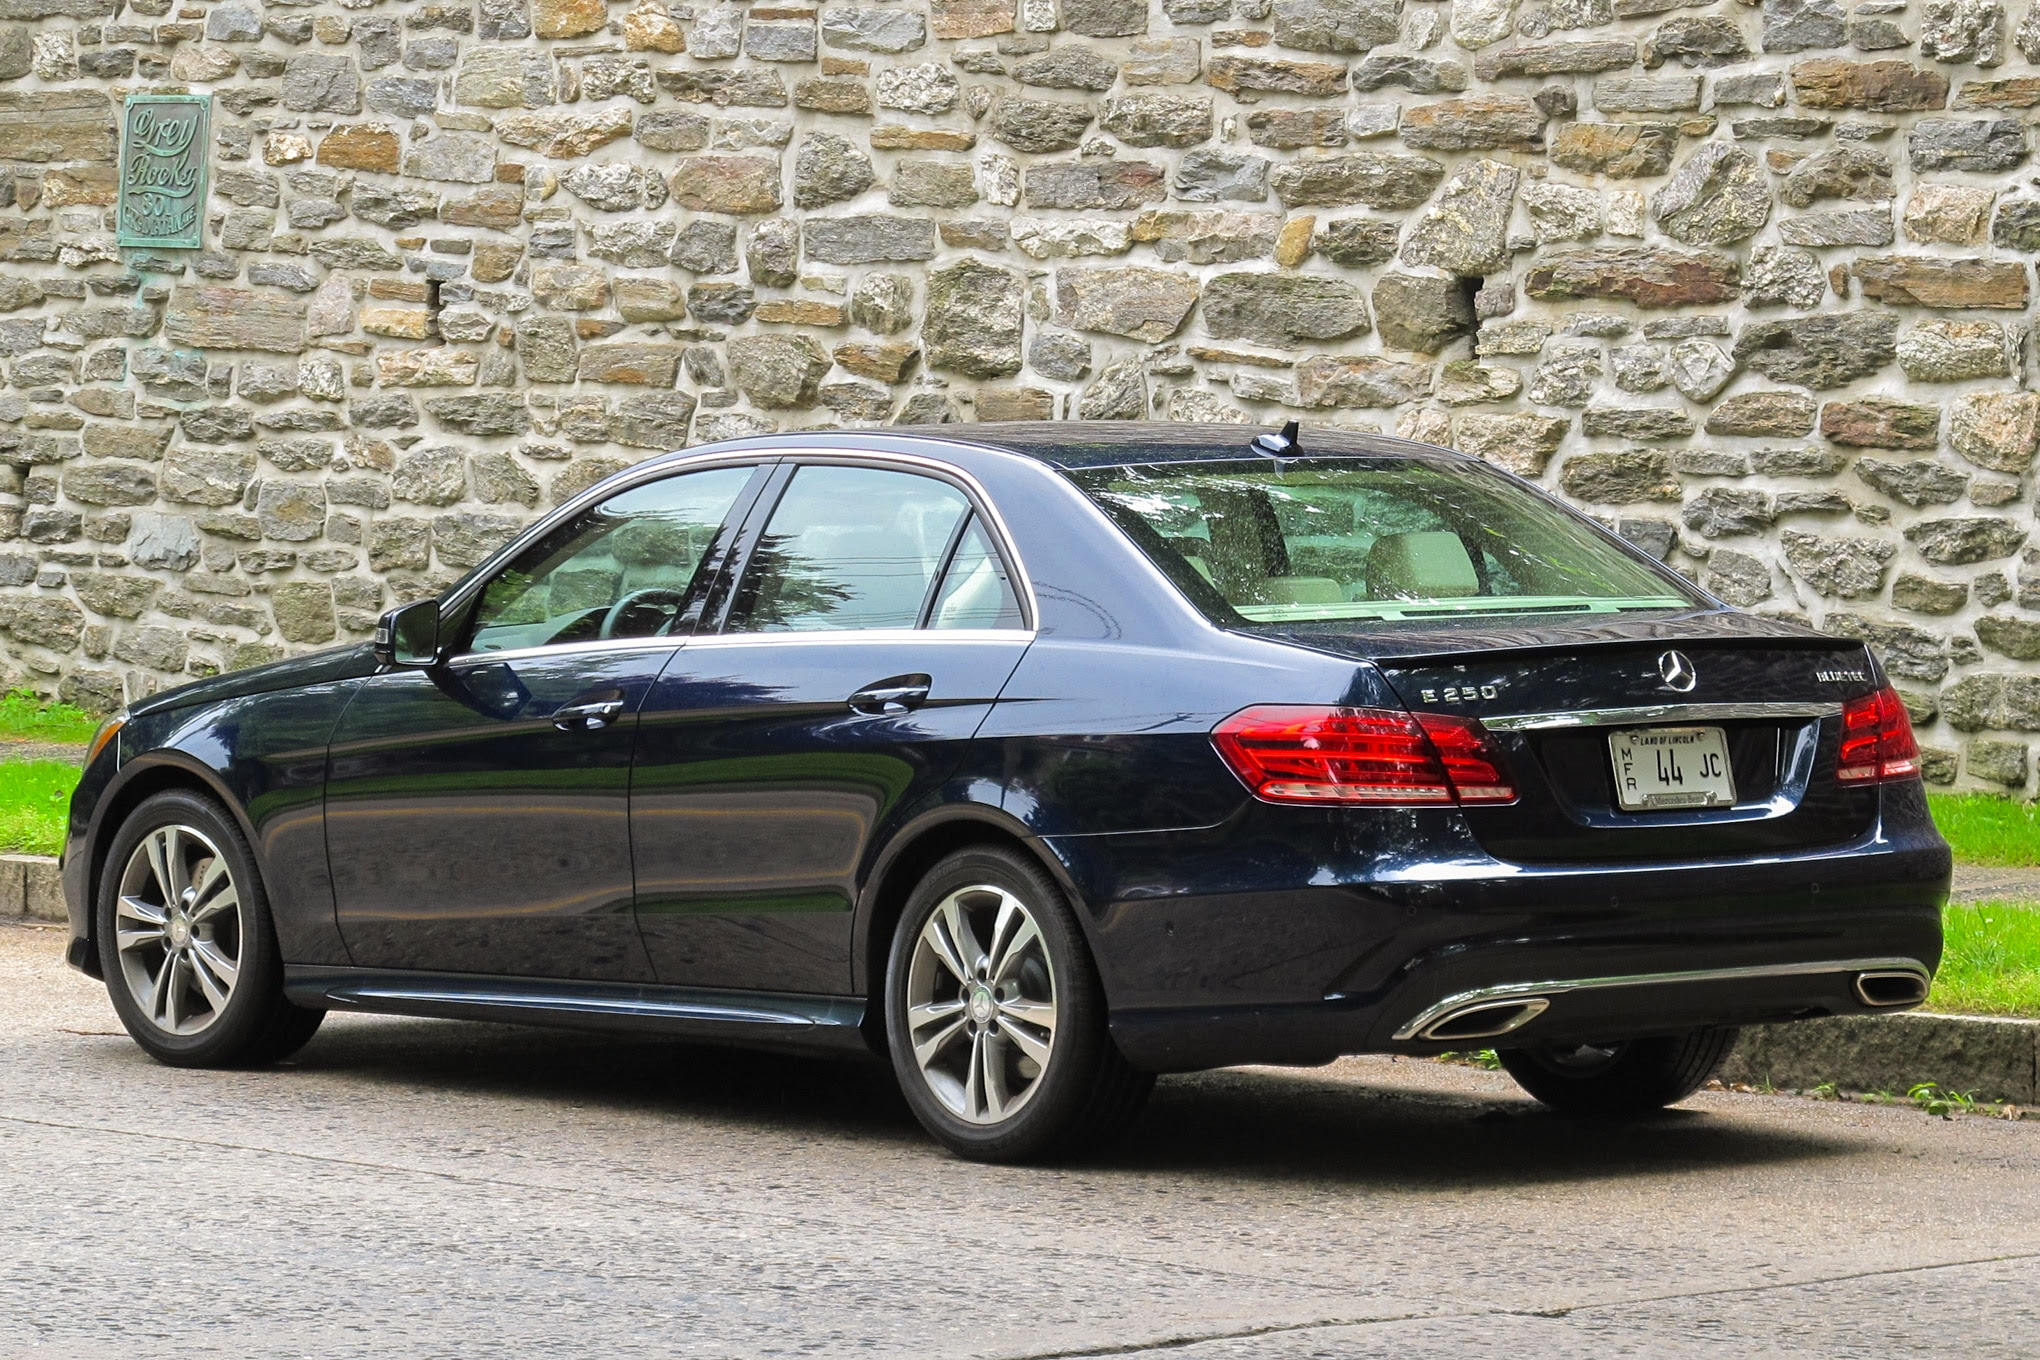 2014 Mercedes-Benz E250 BlueTec: Around The Block